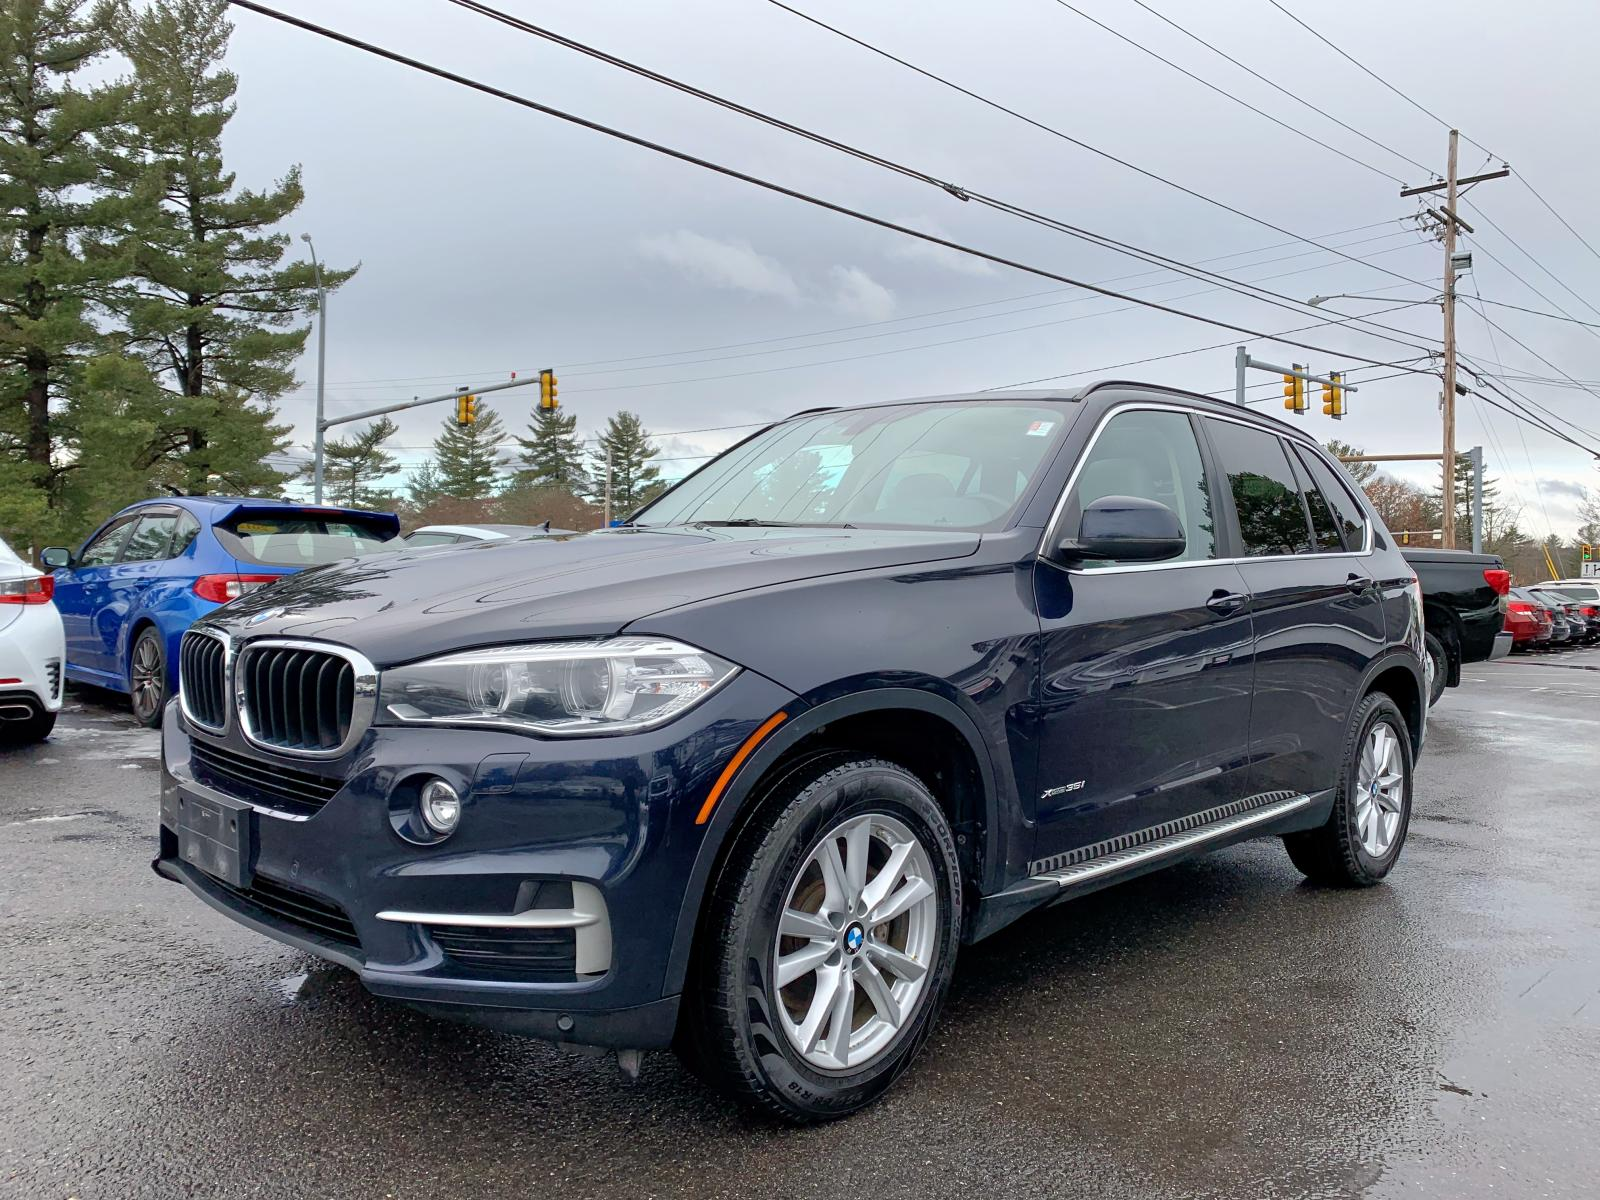 5UXKR0C58E0H25201 - 2014 Bmw X5 Xdrive3 3.0L Left View